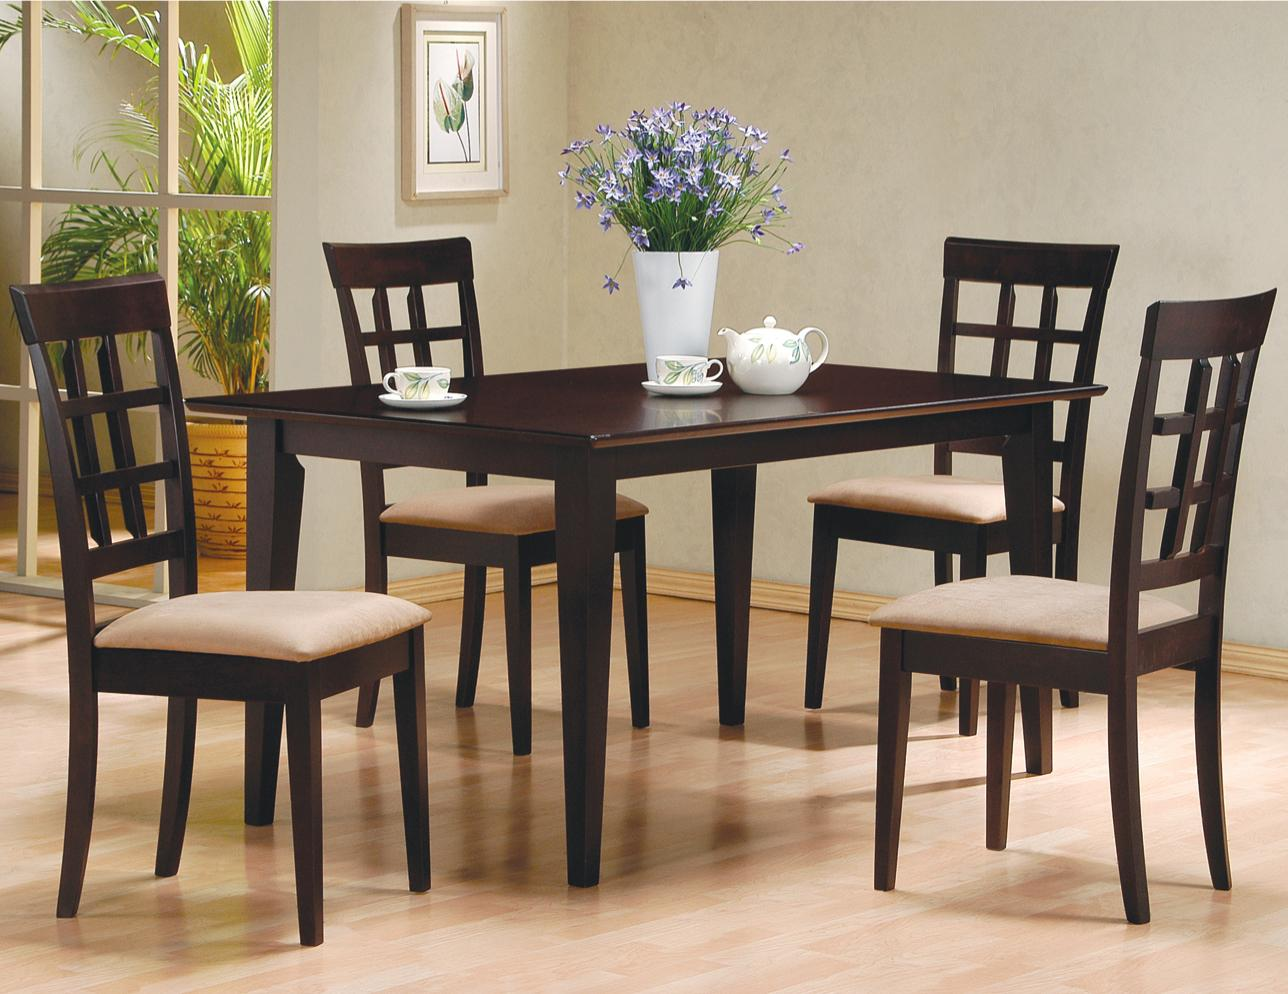 Mix & Match 5 Piece Dining Set by Coaster at Dunk & Bright Furniture